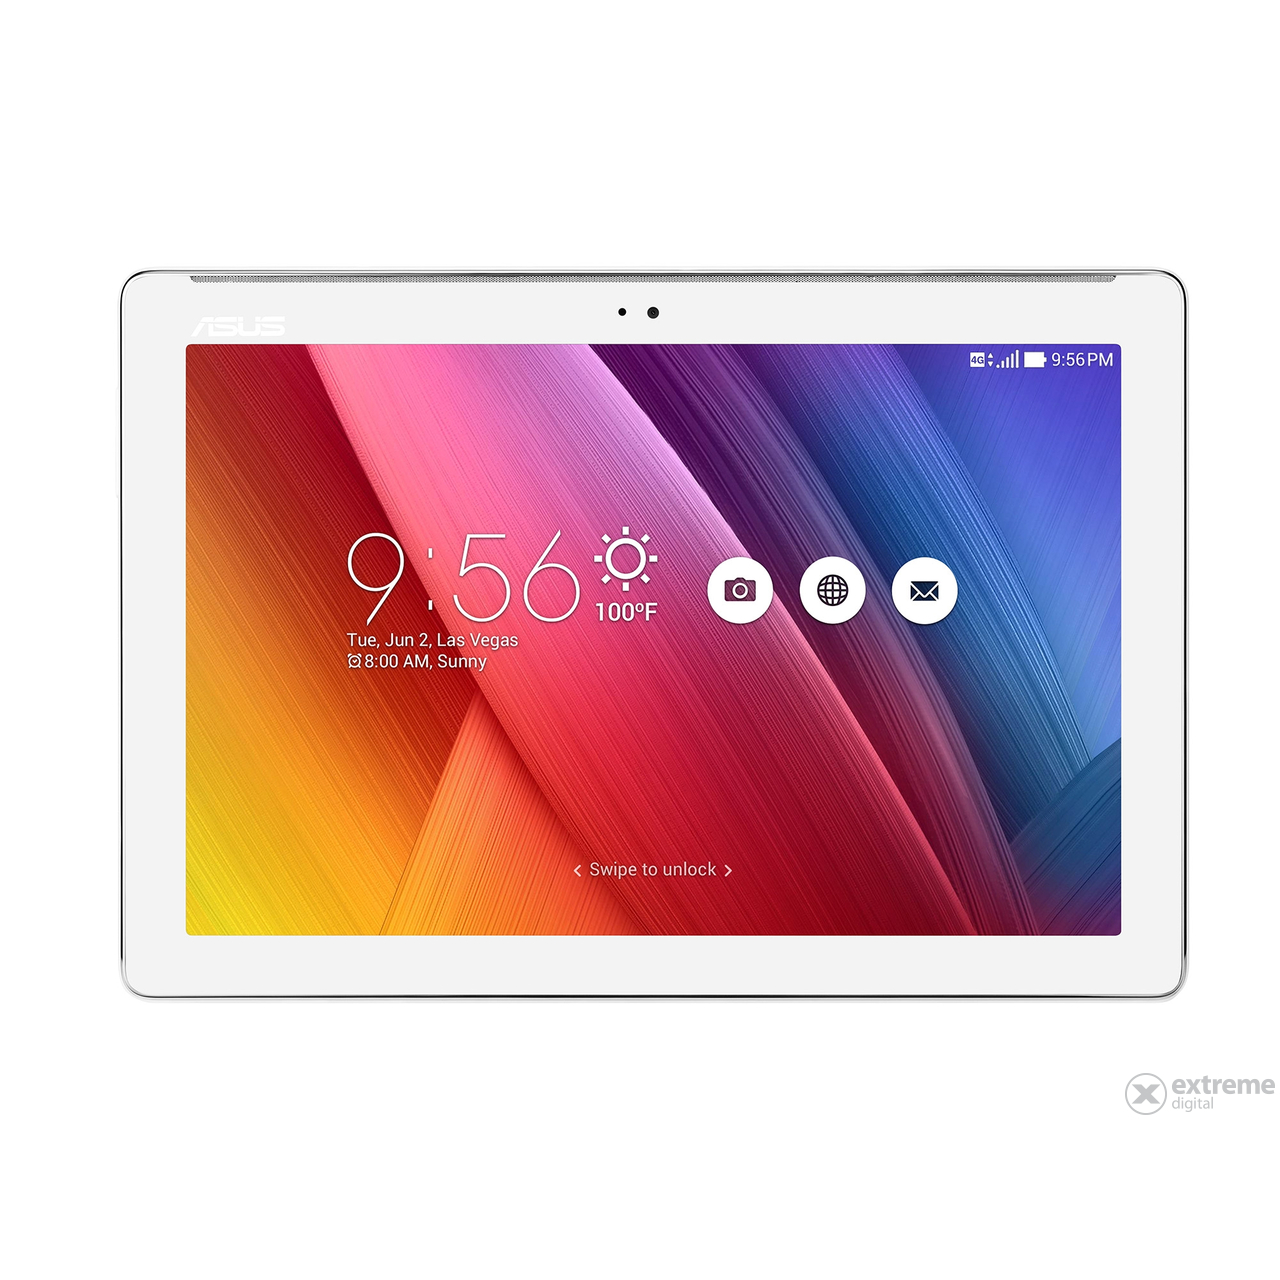 asus-zenpad-z300c-1b047a-16gb-wifi-tablet-white-android_f470c384.jpg